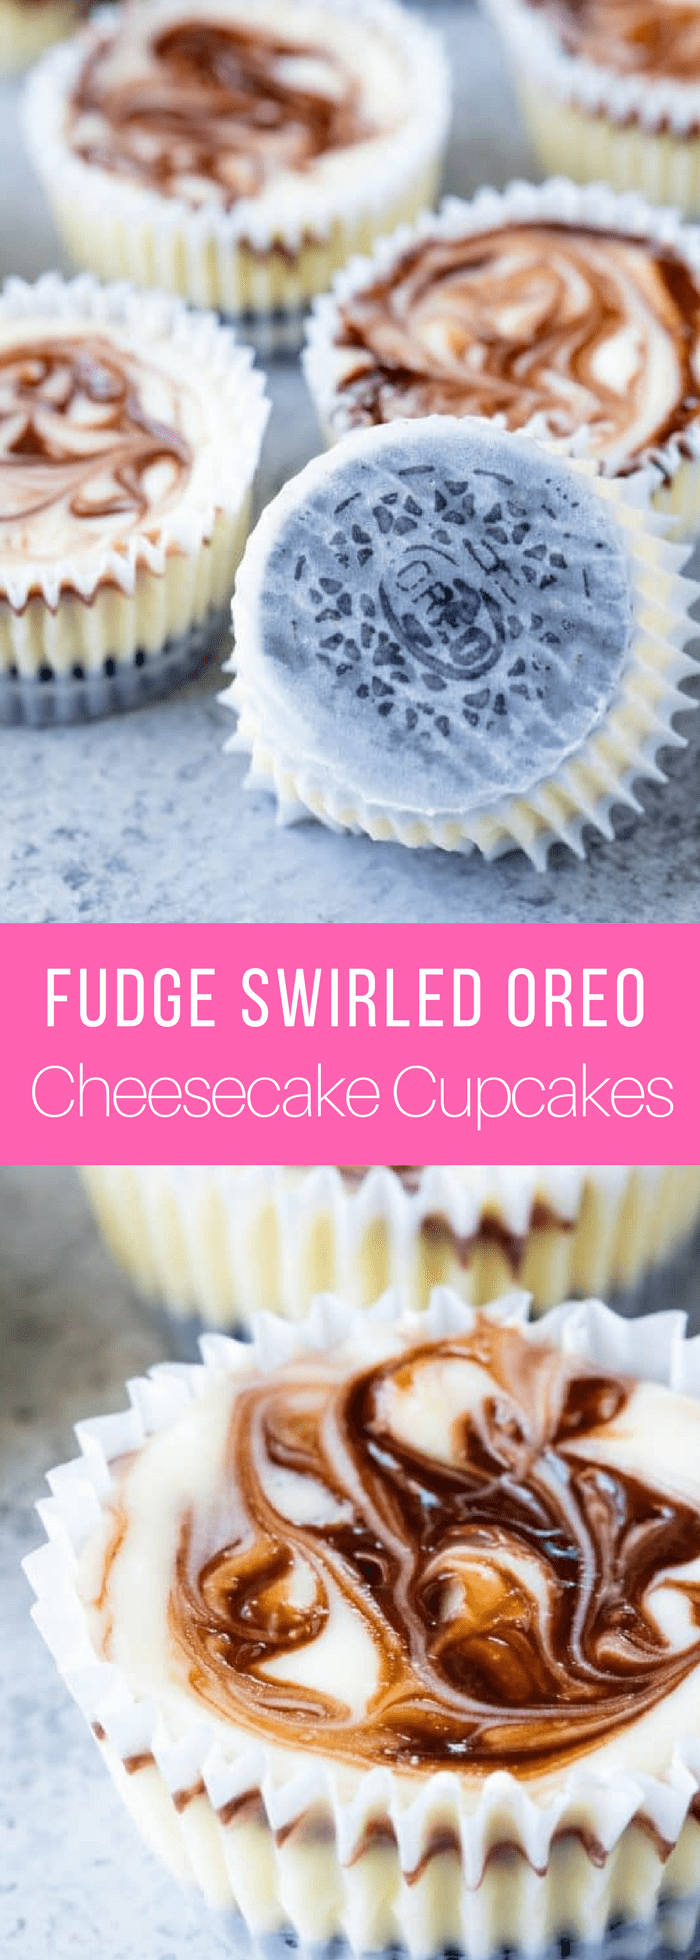 Fudge Swirled Oreo Bottom Cheesecake Cupcakes are a delicious twist on your standard cupcake. It's a fudge swirled mini cheesecake that sits on top of an Oreo cookie. What's not to love?